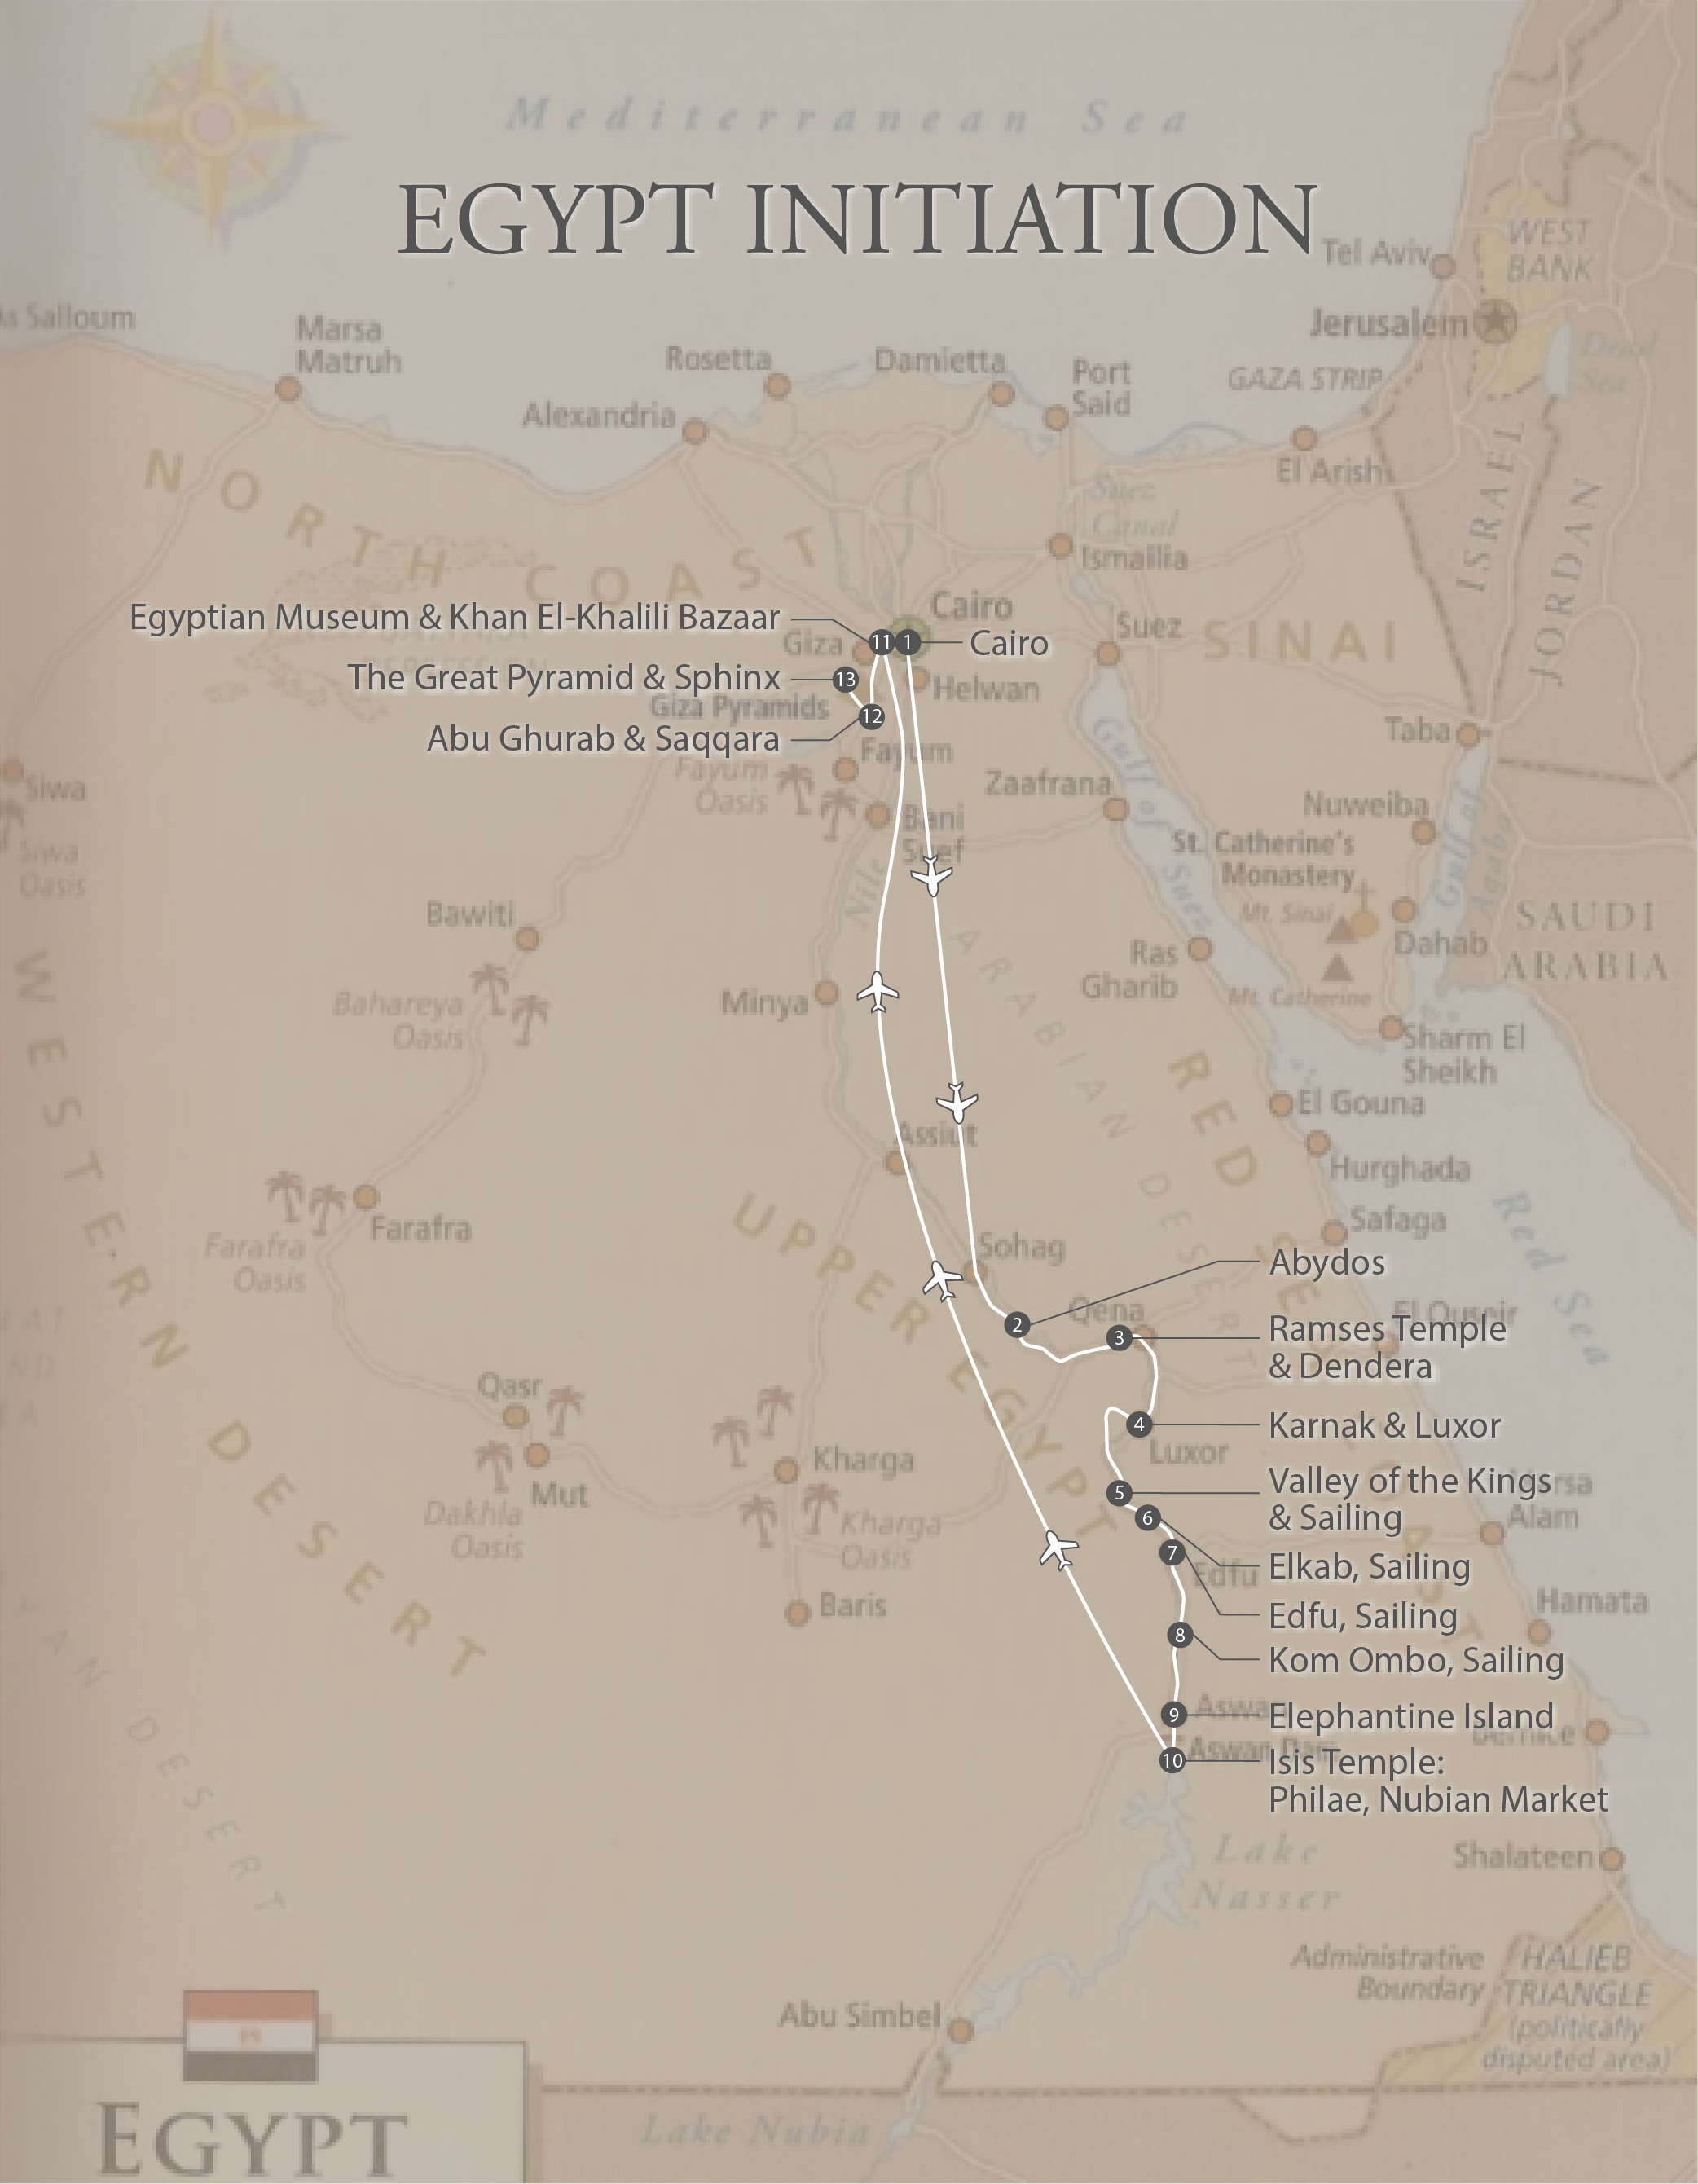 Egypt_Initiation_Map.png